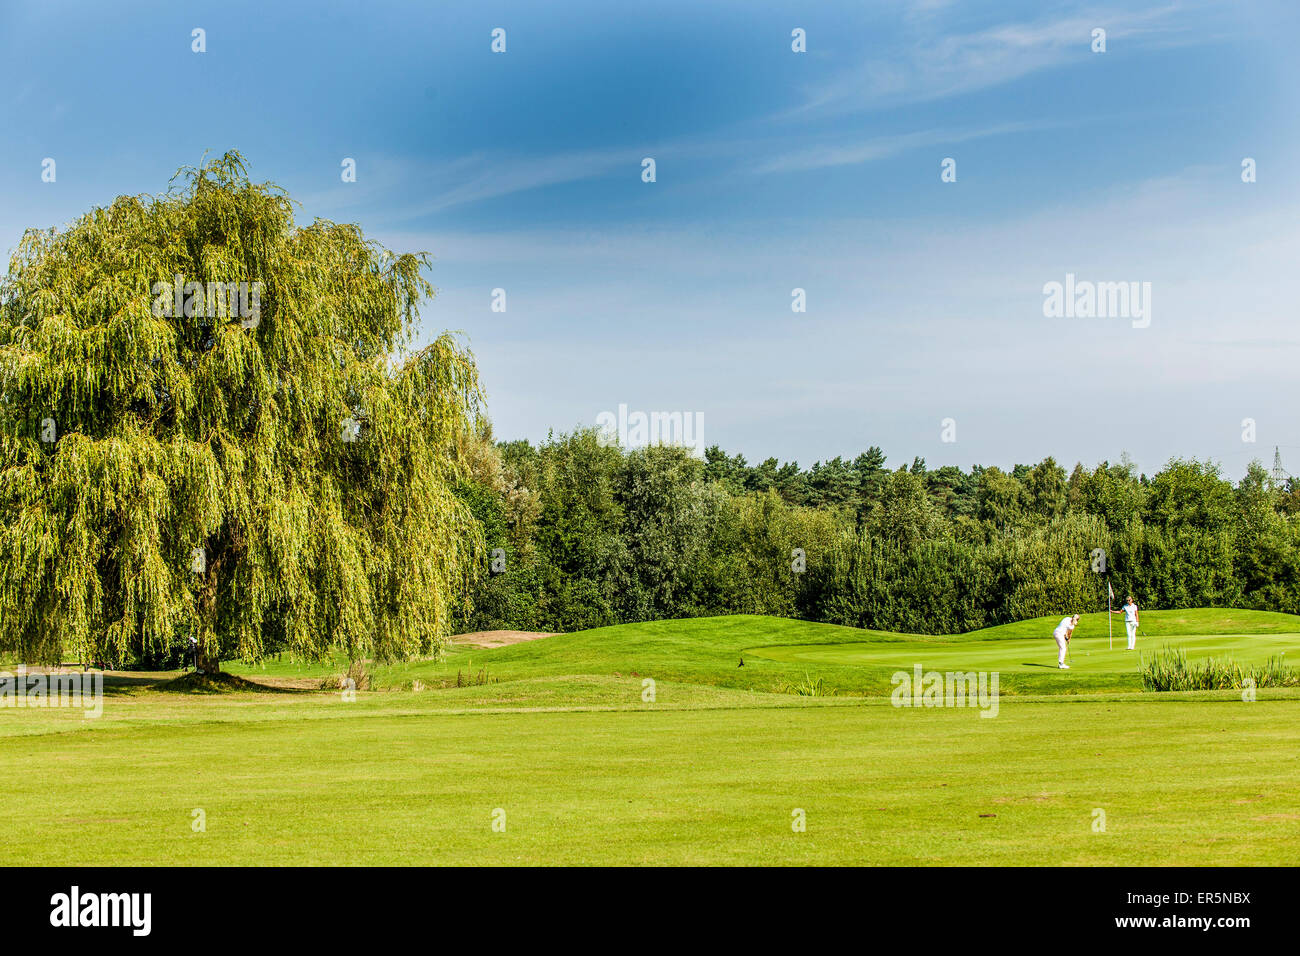 2 women golfers on the putting green, golf course Green Eagle, Radbruch, Winsen Luhe, Niedersachsen, North Germany, - Stock Image